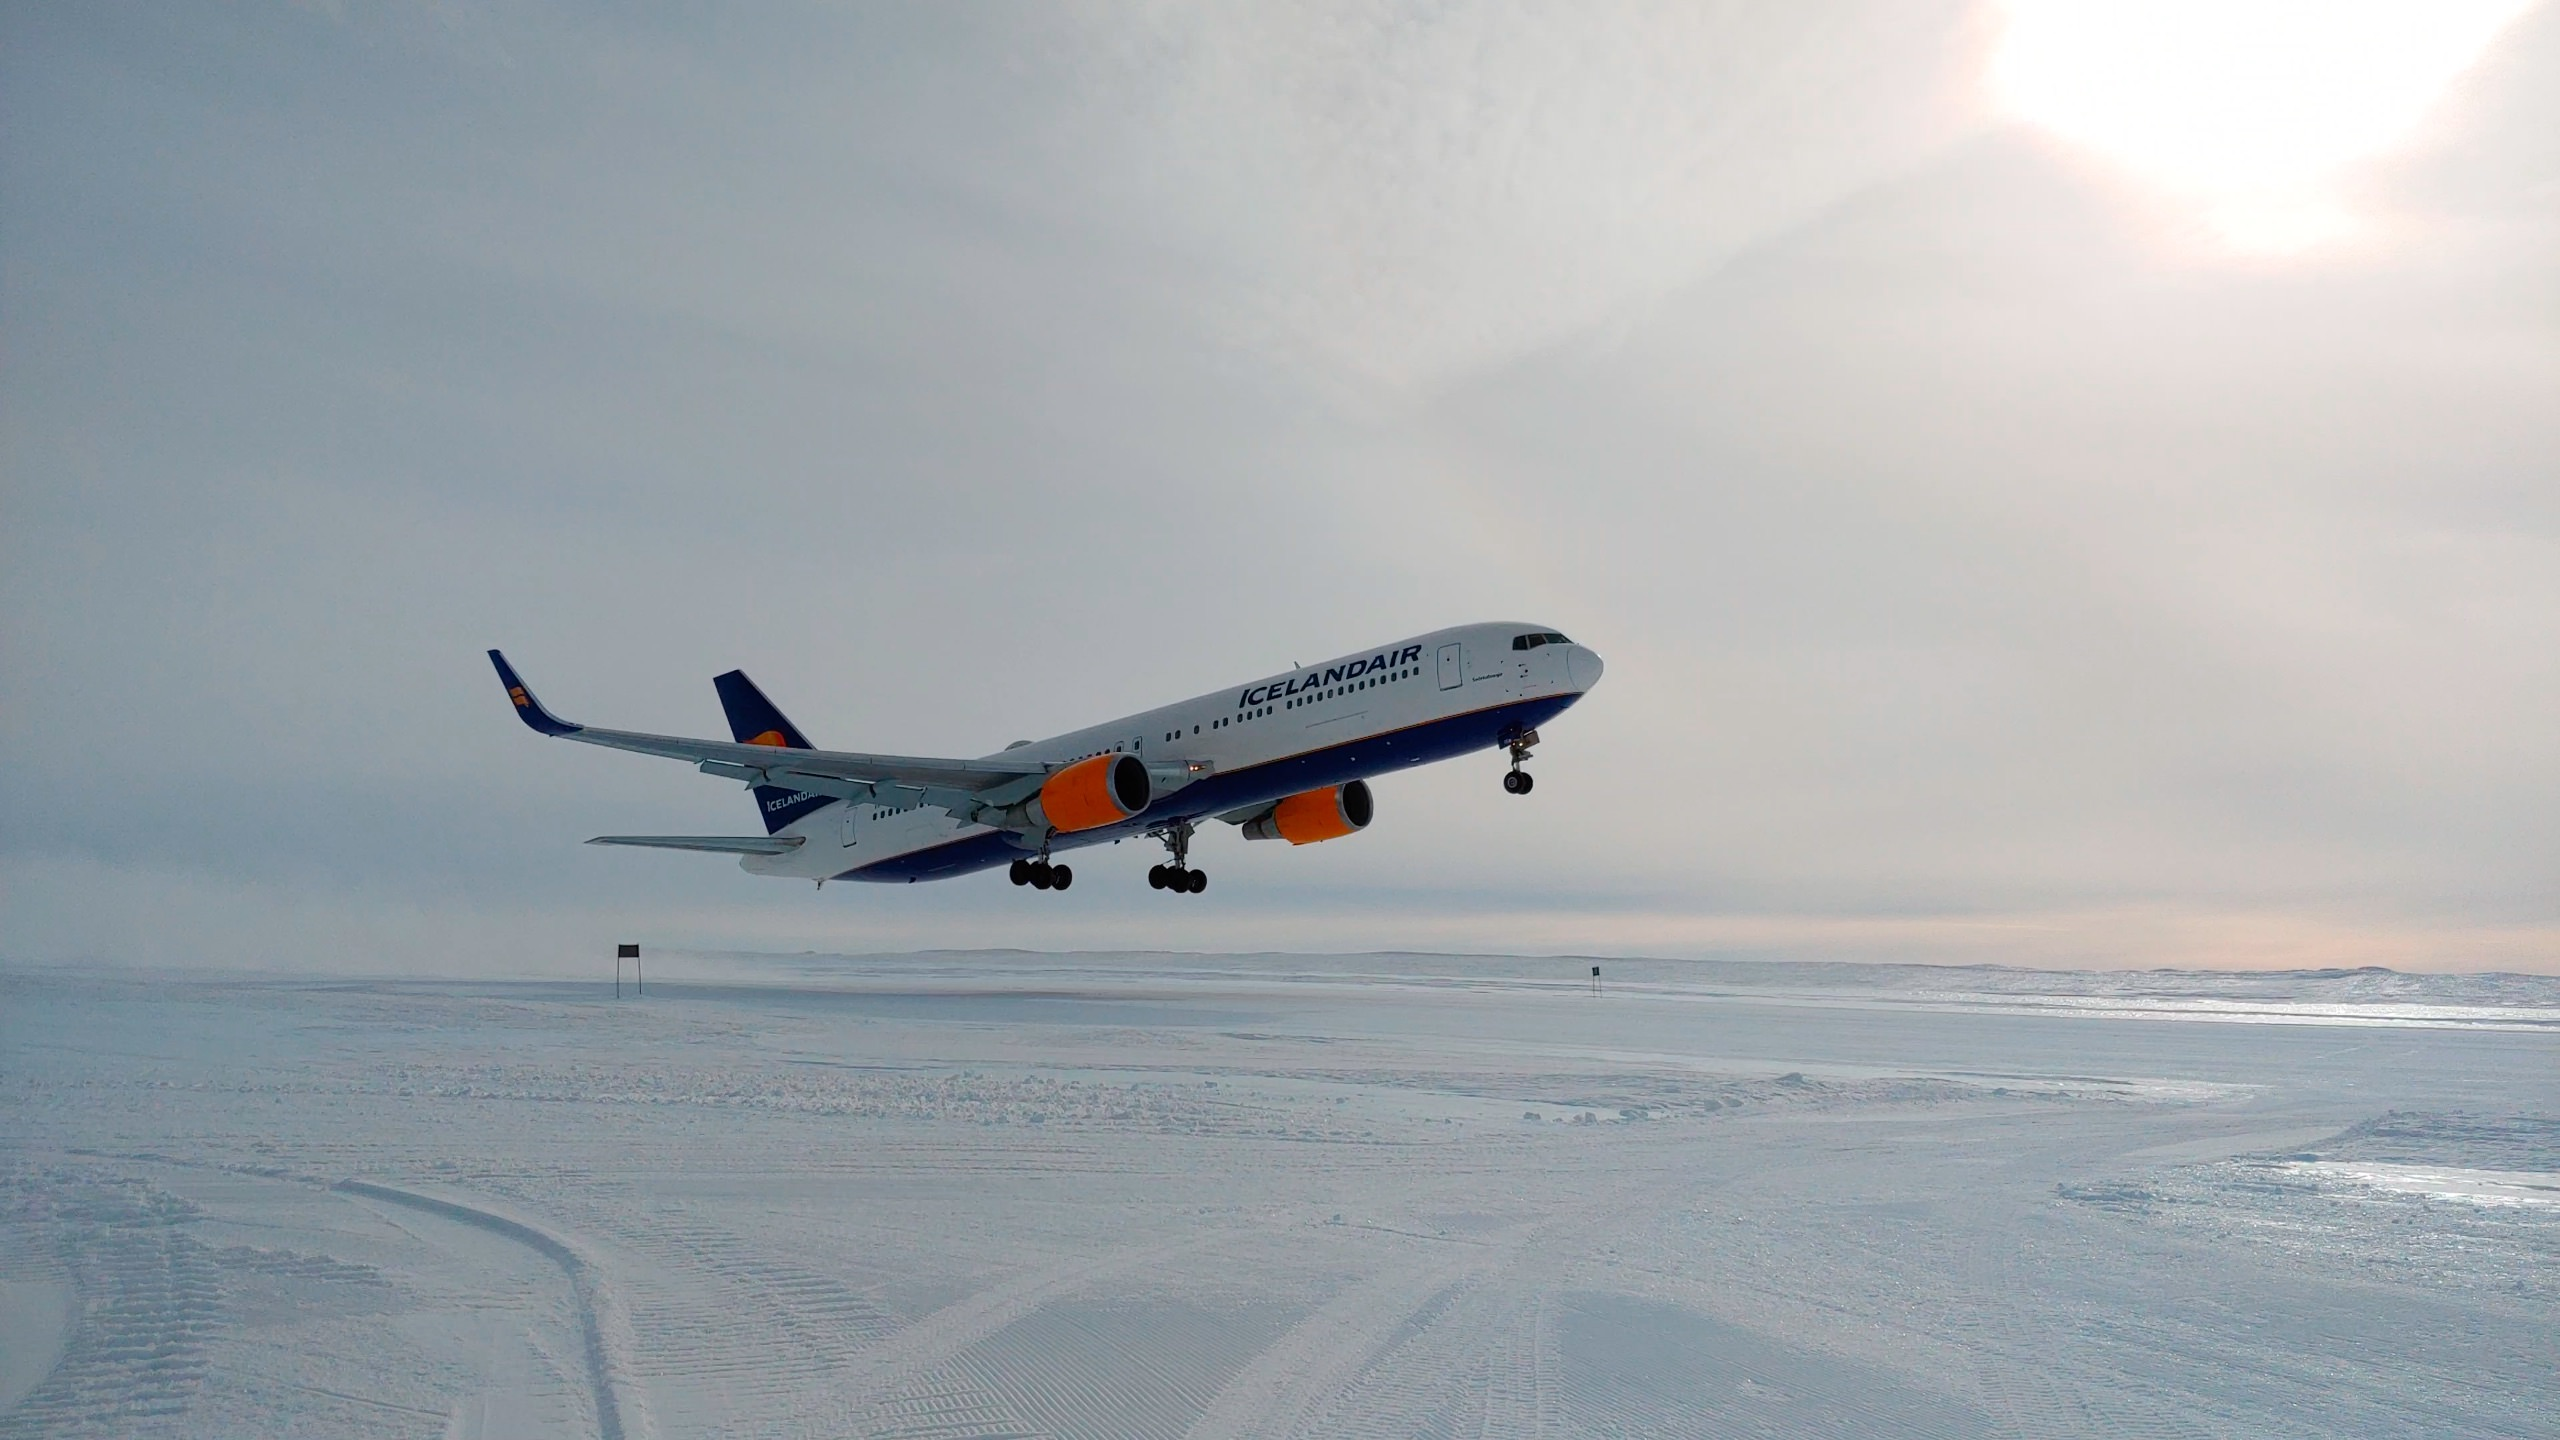 Icelandair 767 departing Troll Airfield